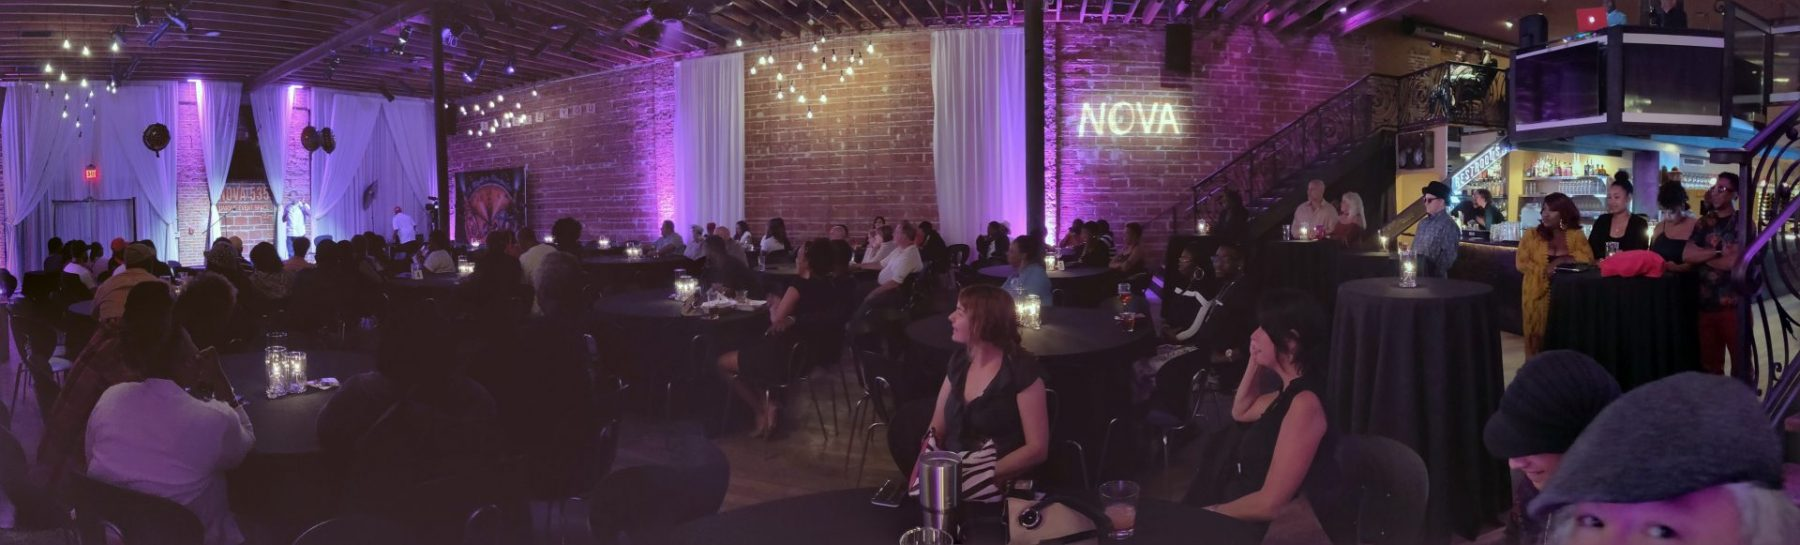 2019 03-21 ESC COMEDY NIGHT panoramic NOVA 535 facing north